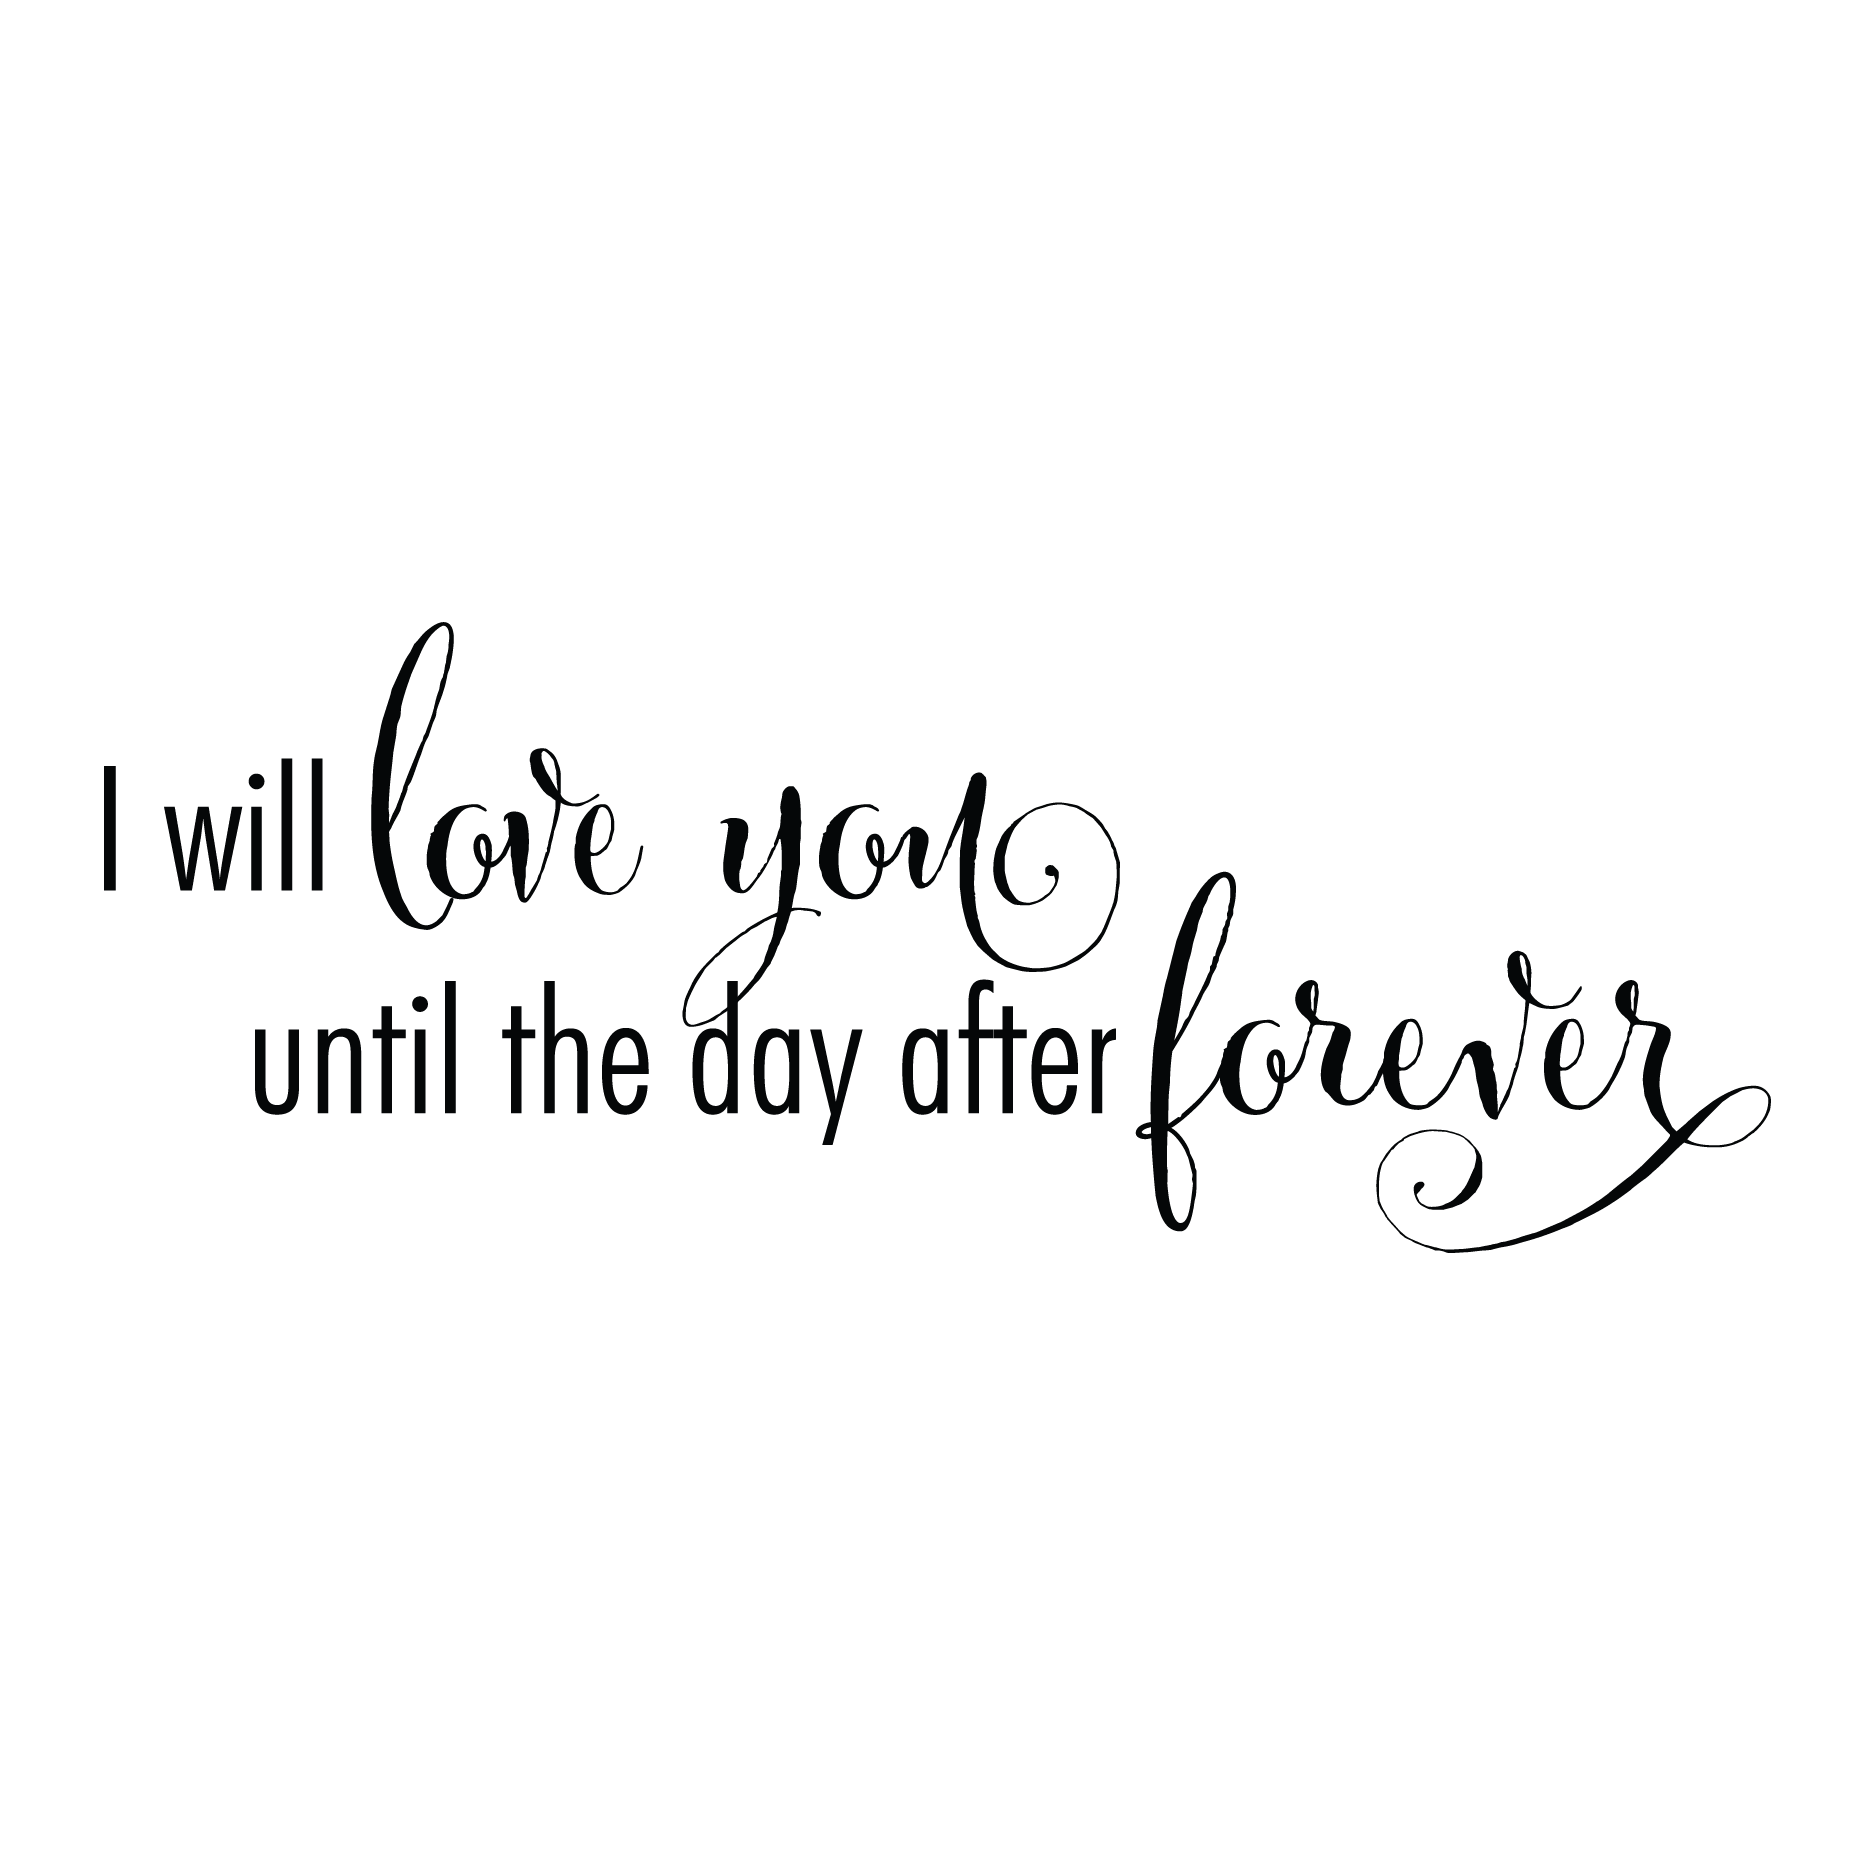 I Ll Love You Forever Quotes Brilliant I Will Love You Until The Day After Foreverquote For Wall $44